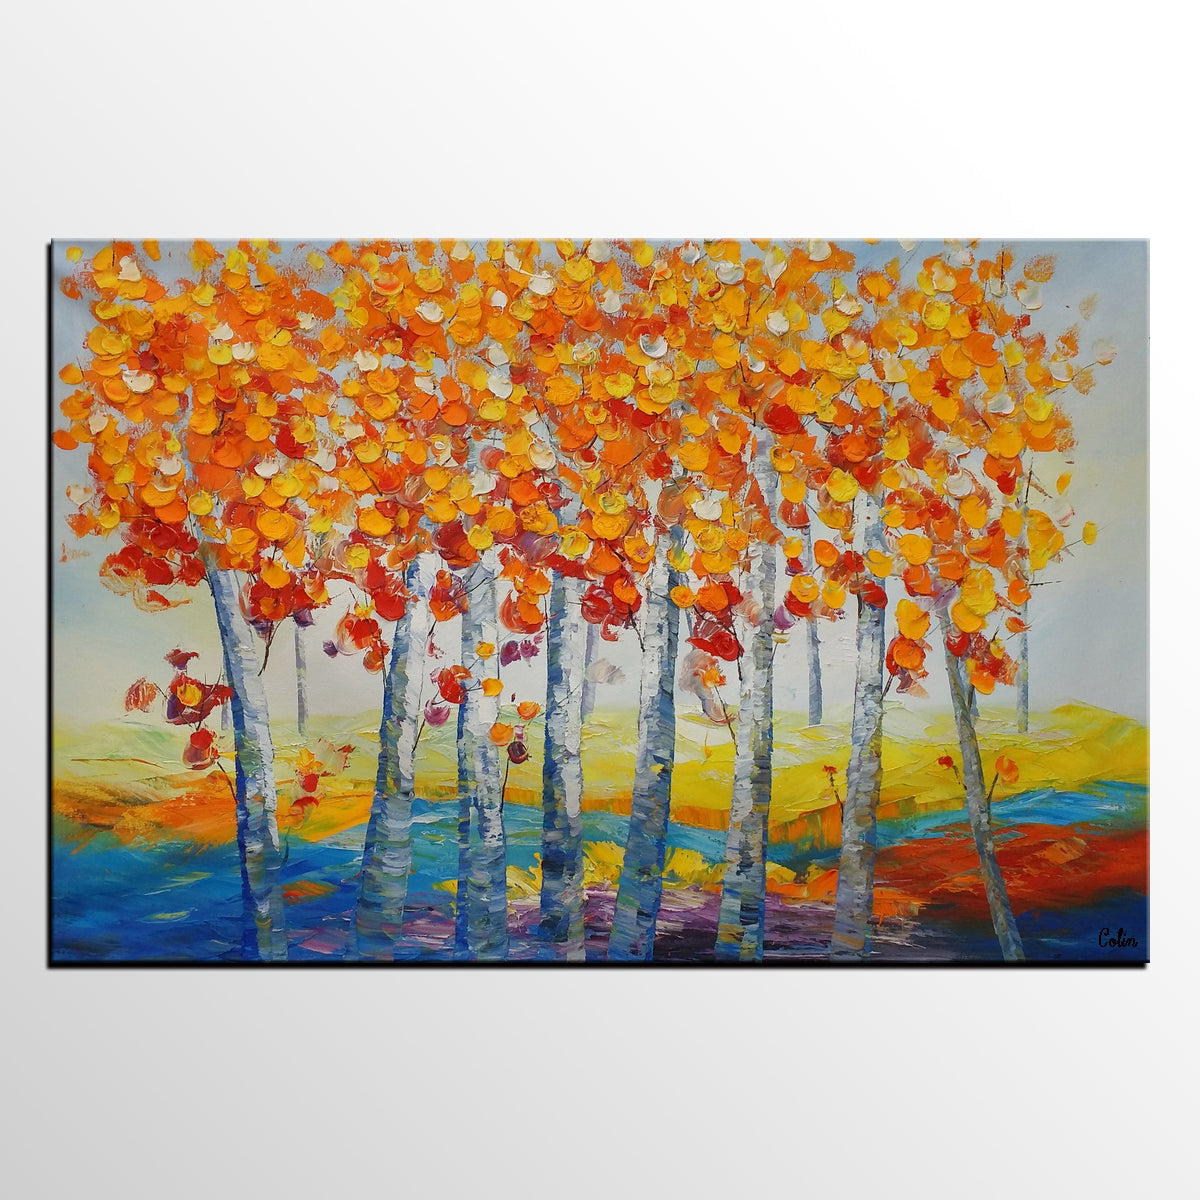 Oil Painting, Landscape Painting, Large Art, Canvas Wall Art, Canvas Painting